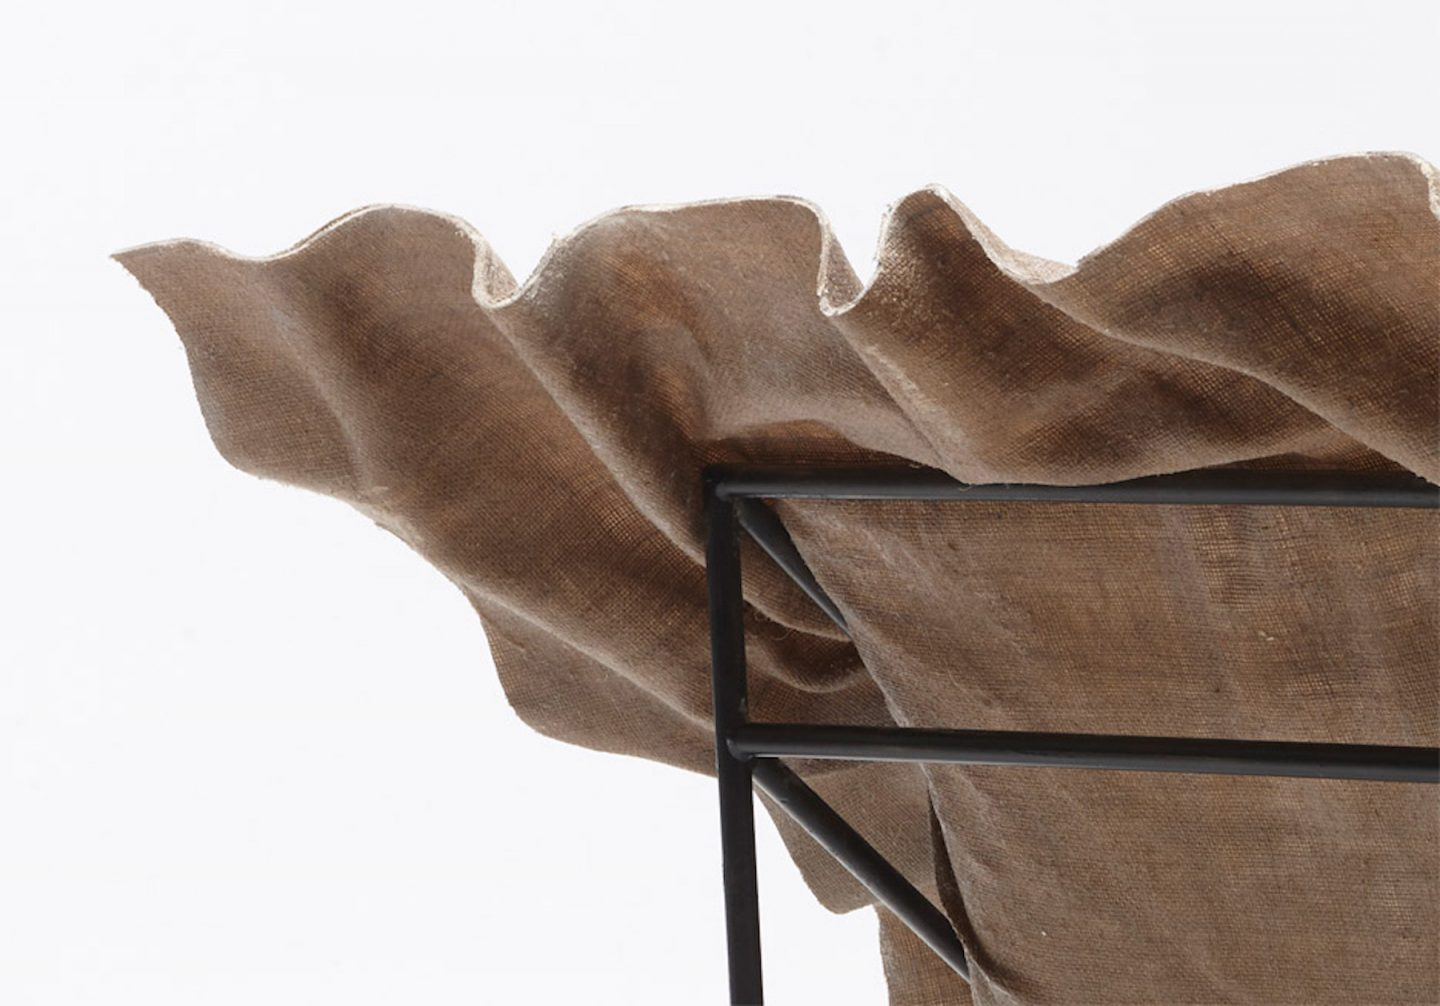 iGNANT-Design-Demeter-Fogarasi-Poetic-Furniture-Frozen-Textiles-04